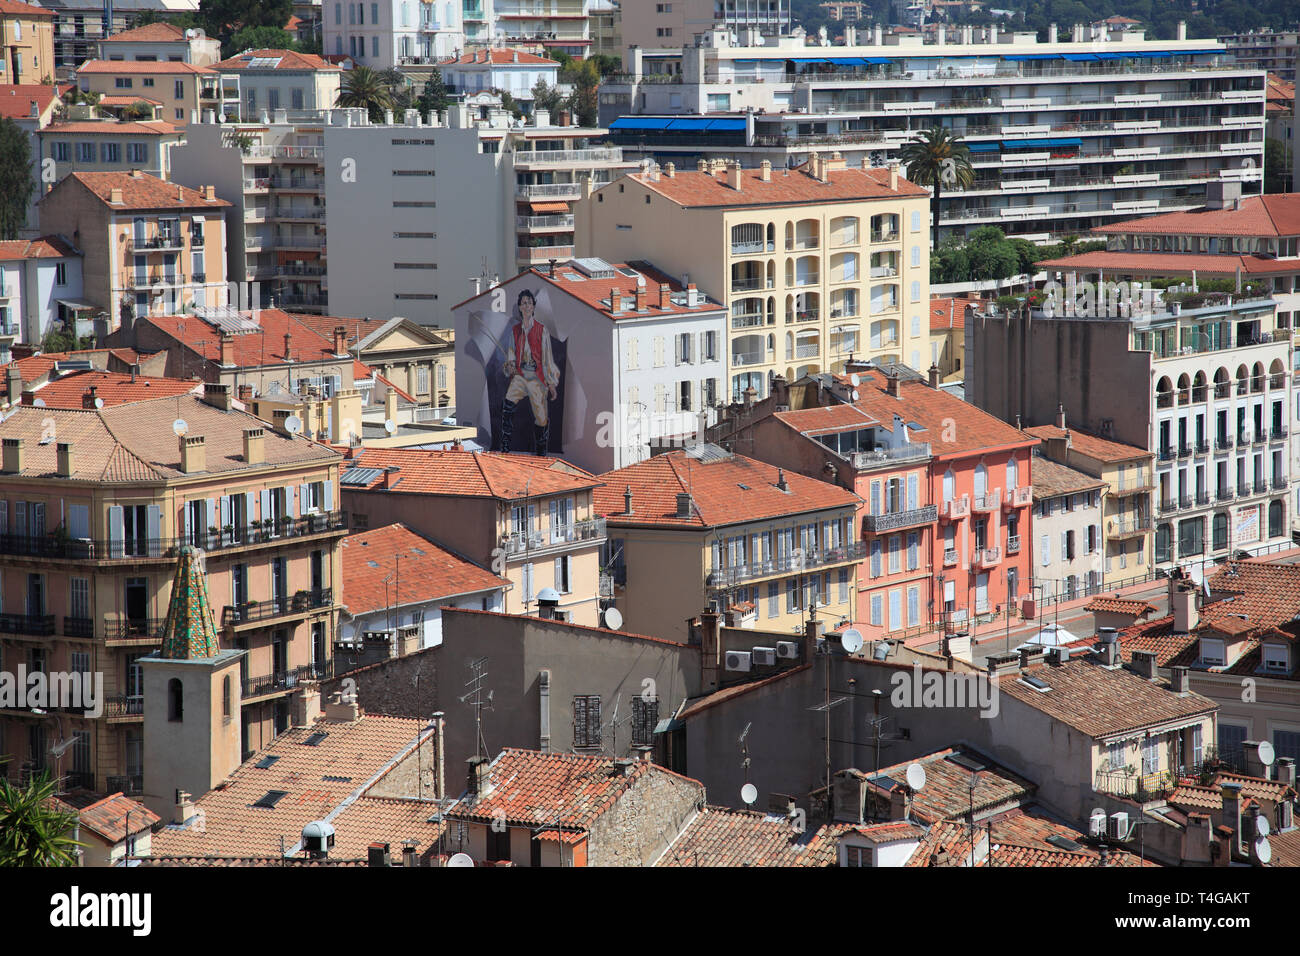 Cannes, Cote d'Azur, French Riviera, Alpes Maritimes, Provence, France, Europe - Stock Image